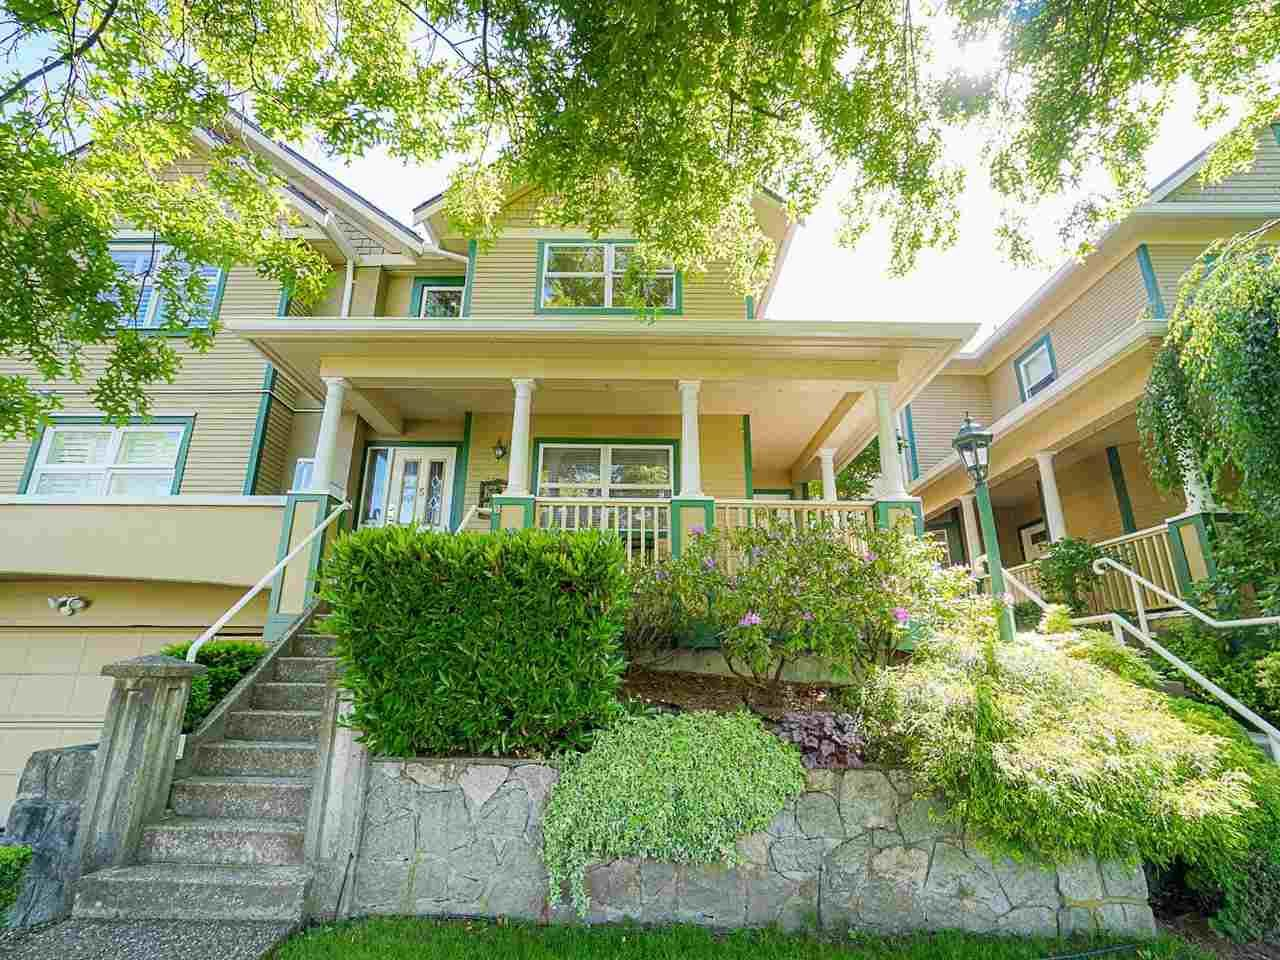 """Photo 3: Photos: 4 235 E KEITH Road in North Vancouver: Lower Lonsdale Townhouse for sale in """"Carriage Hill"""" : MLS®# R2471169"""